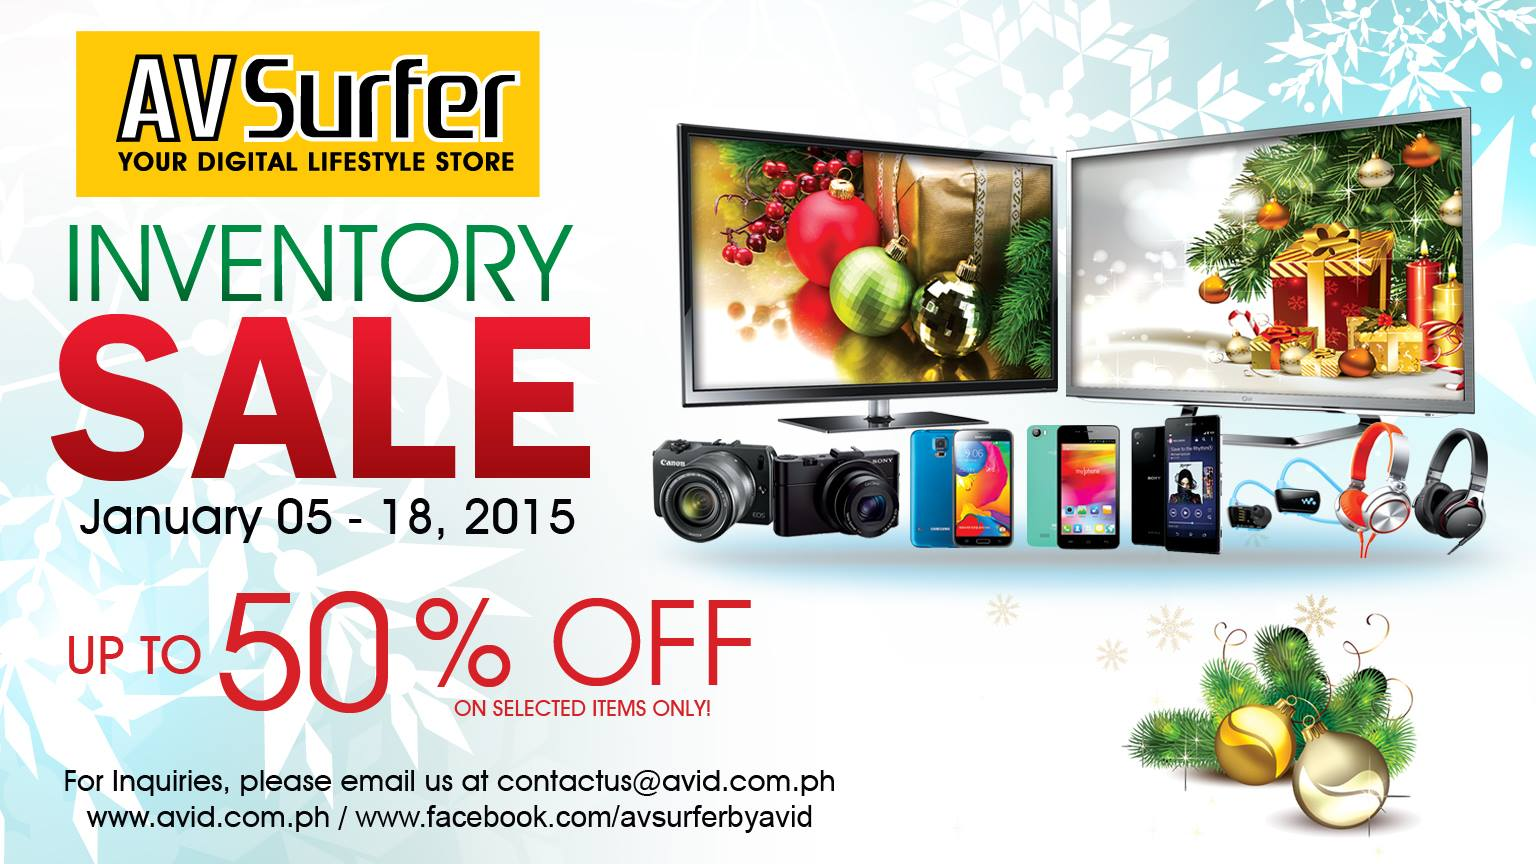 AV Surfer Inventory Sale January 2015